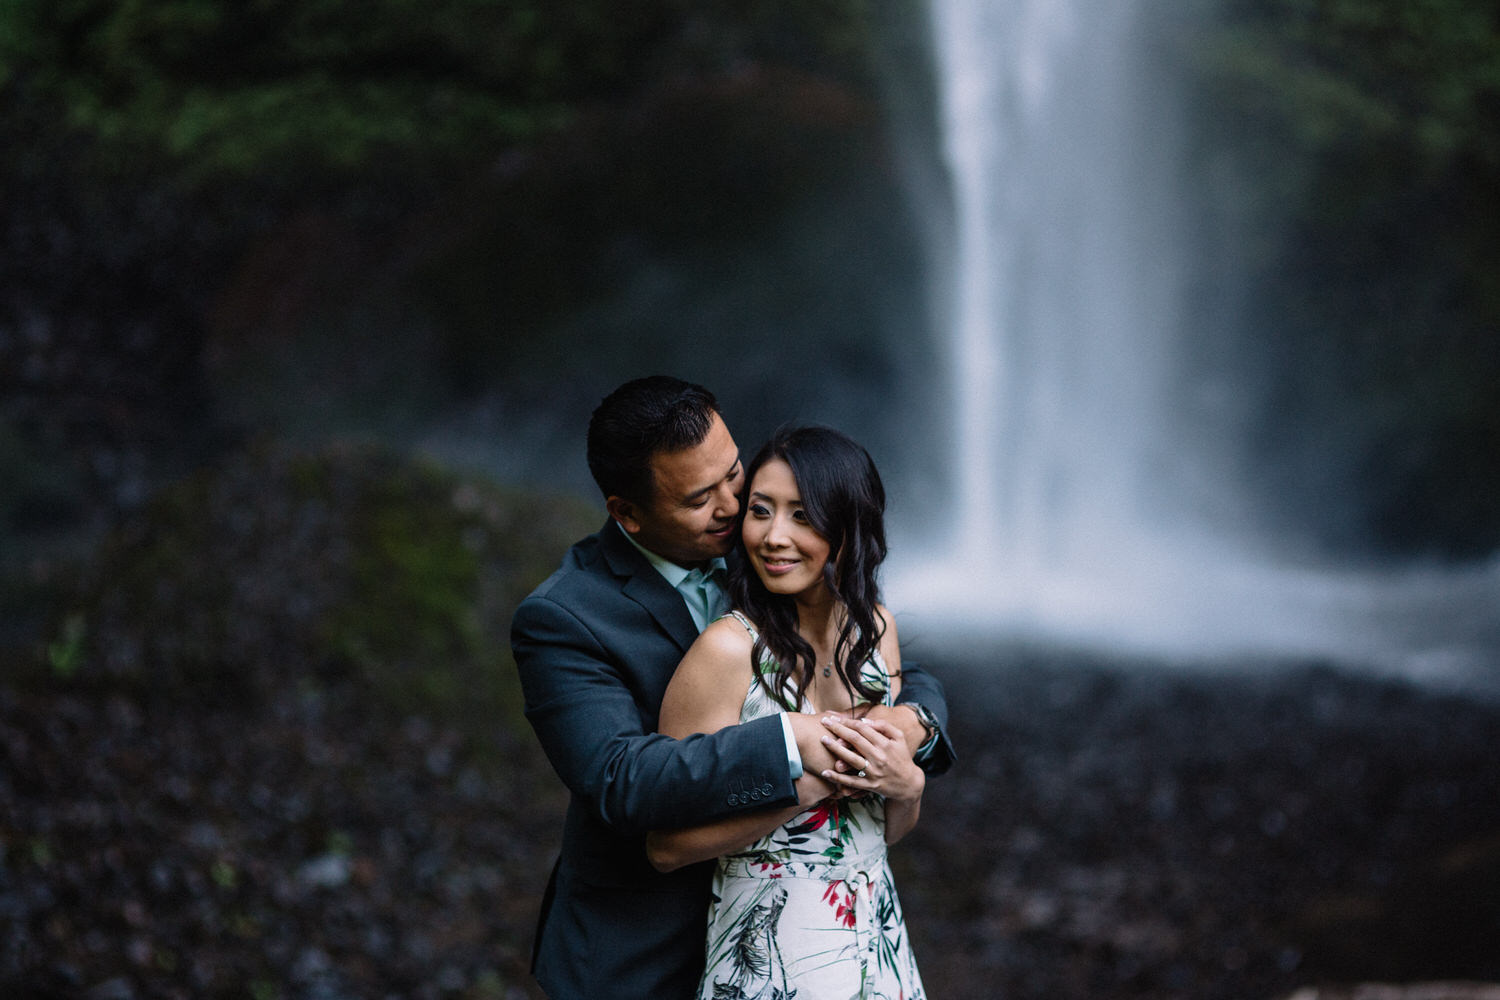 Latourell Falls engagement photography004.JPG